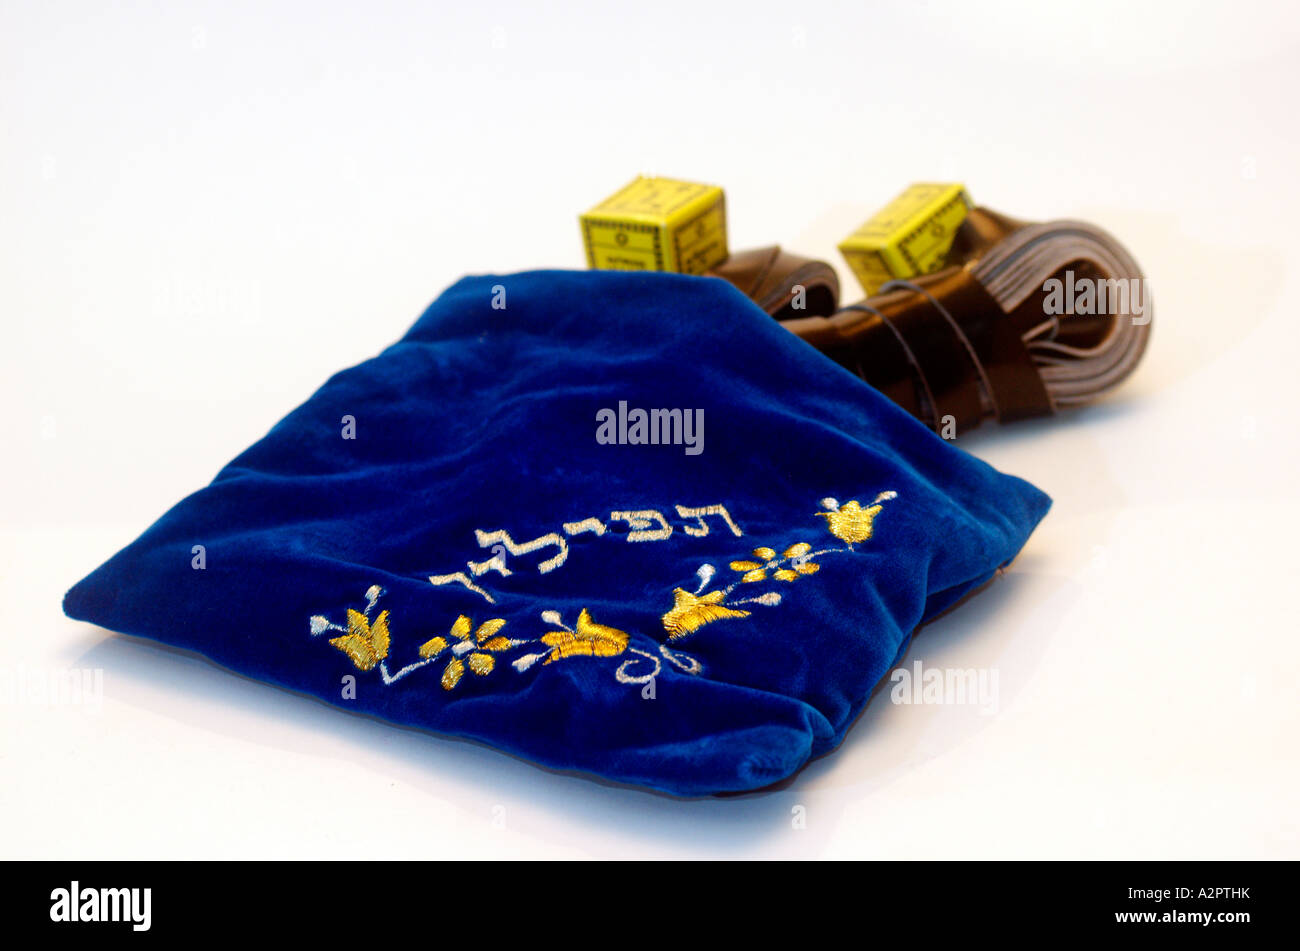 Tifillin and elaborated decorated tfillin bag - Stock Image